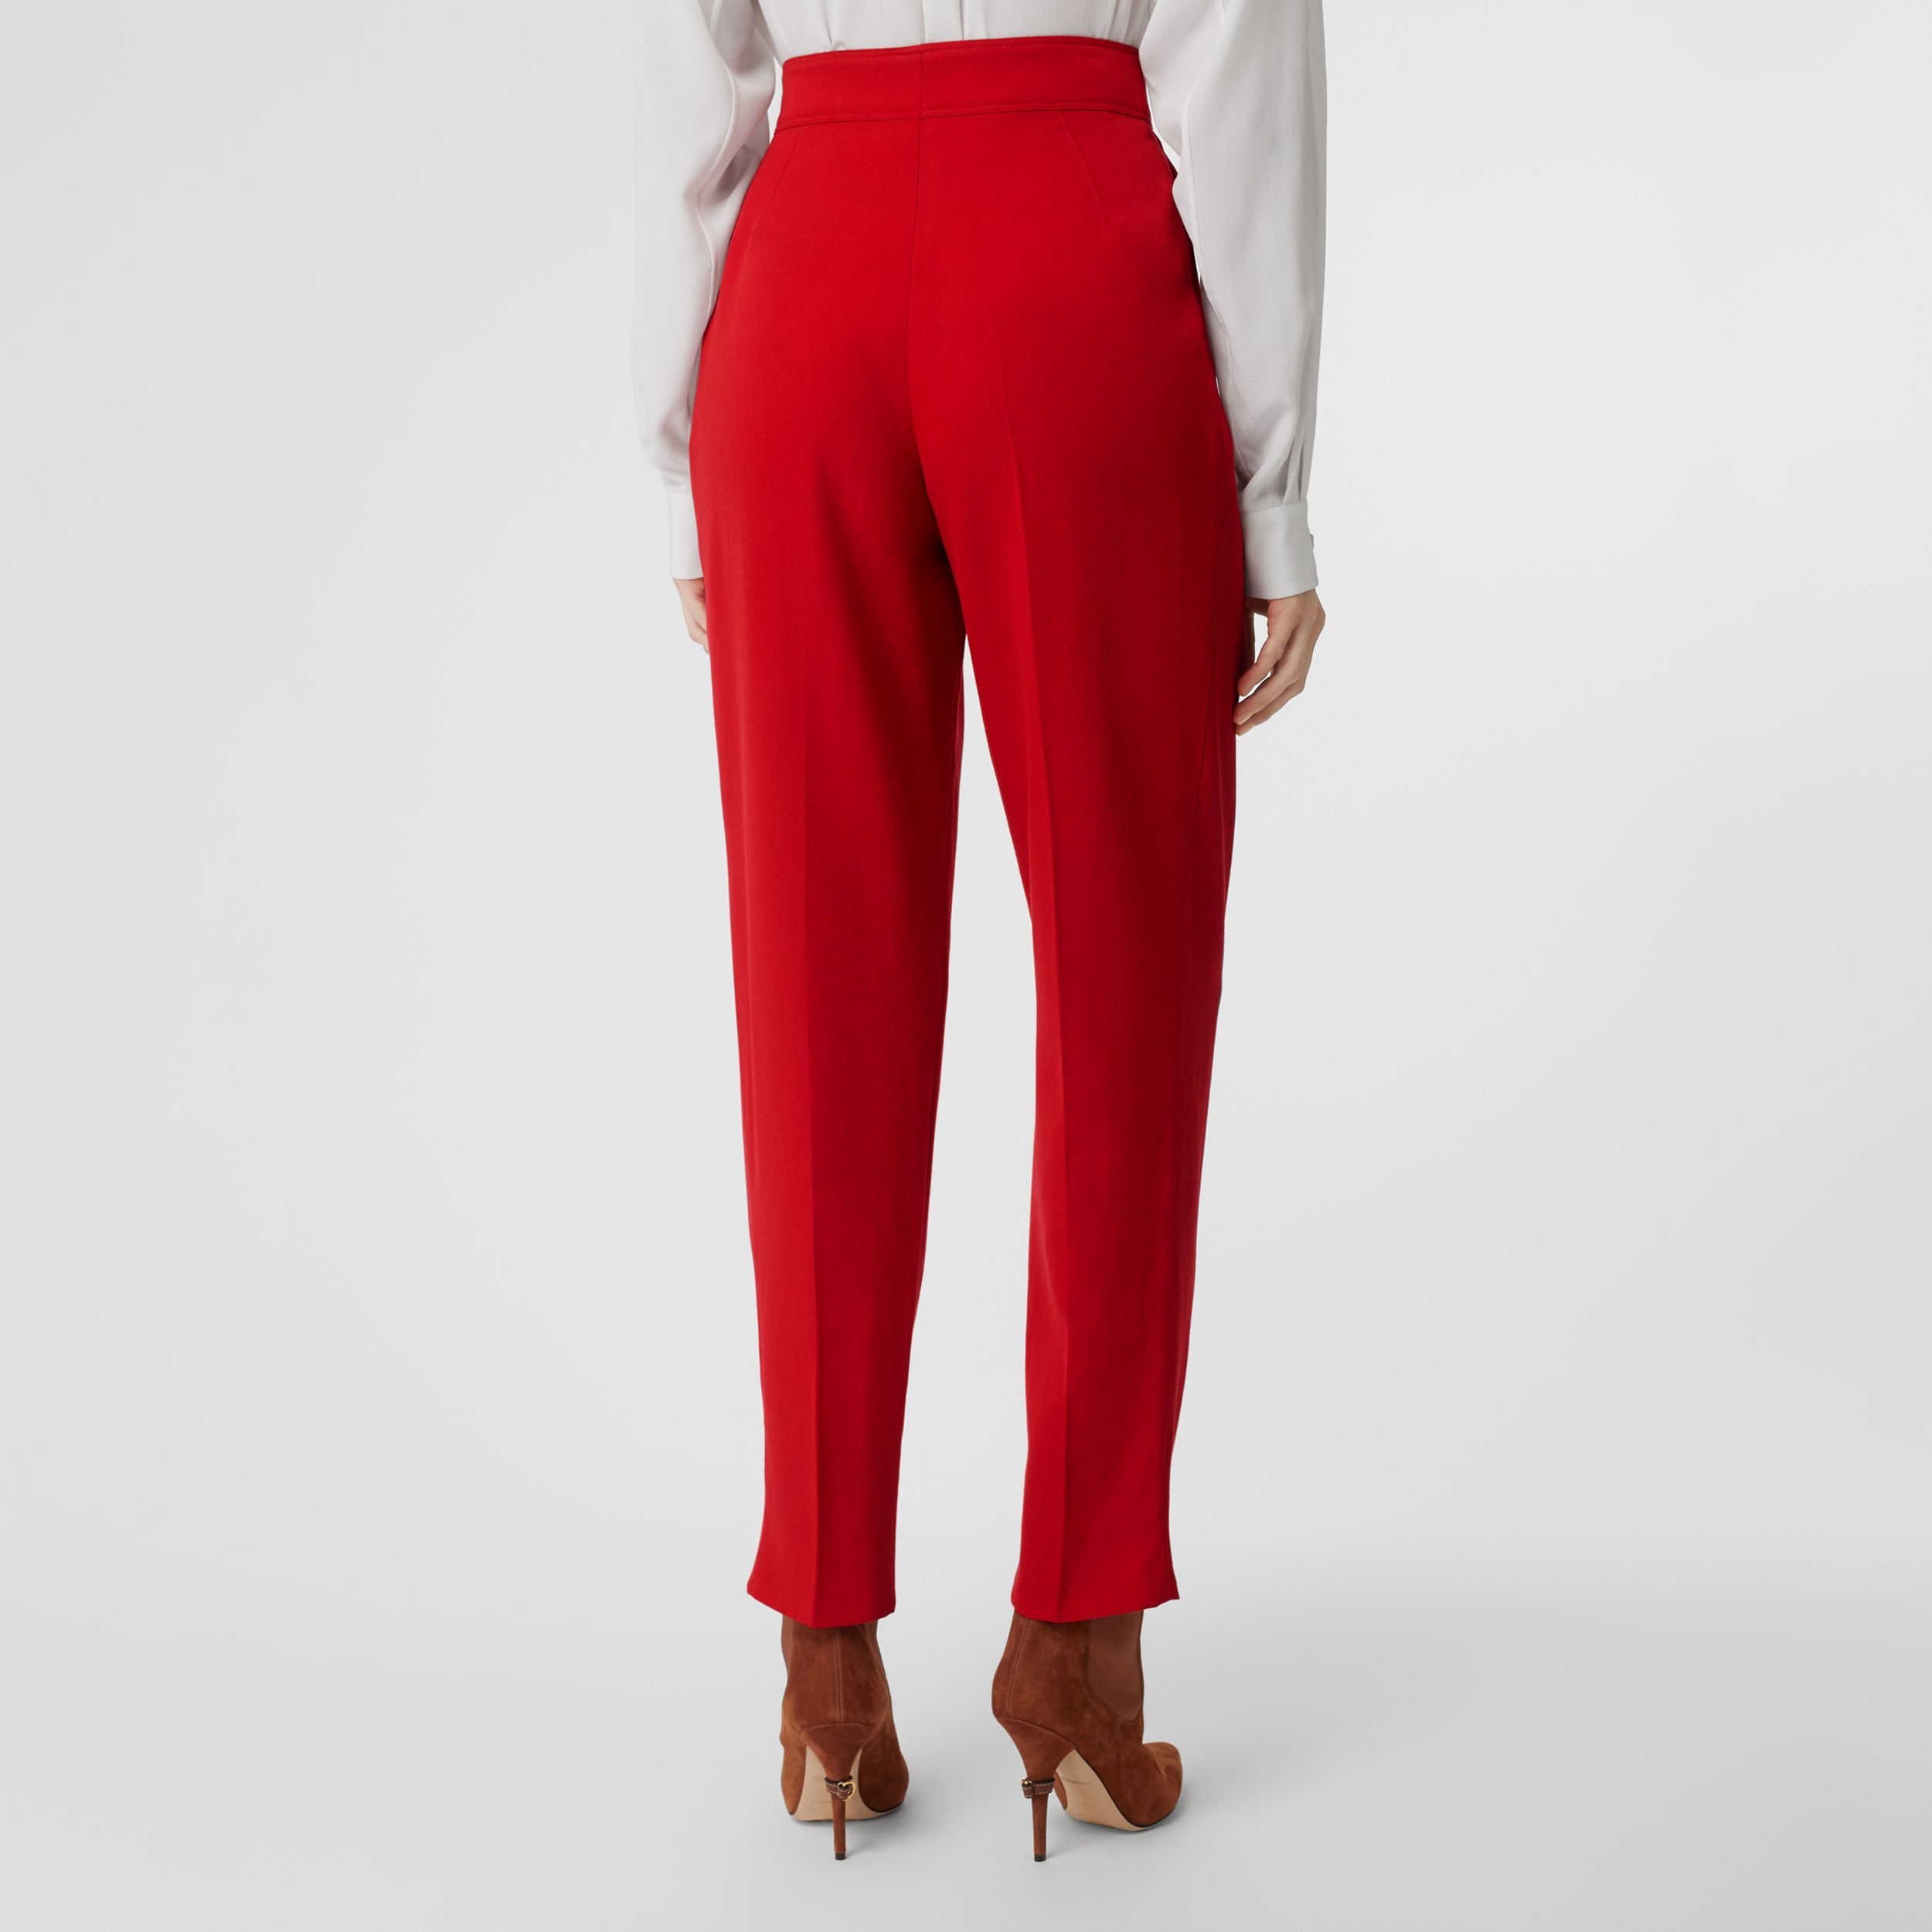 Pleat Detail Wool Tailored Trousers in Bright Red - Women | Burberry - 3